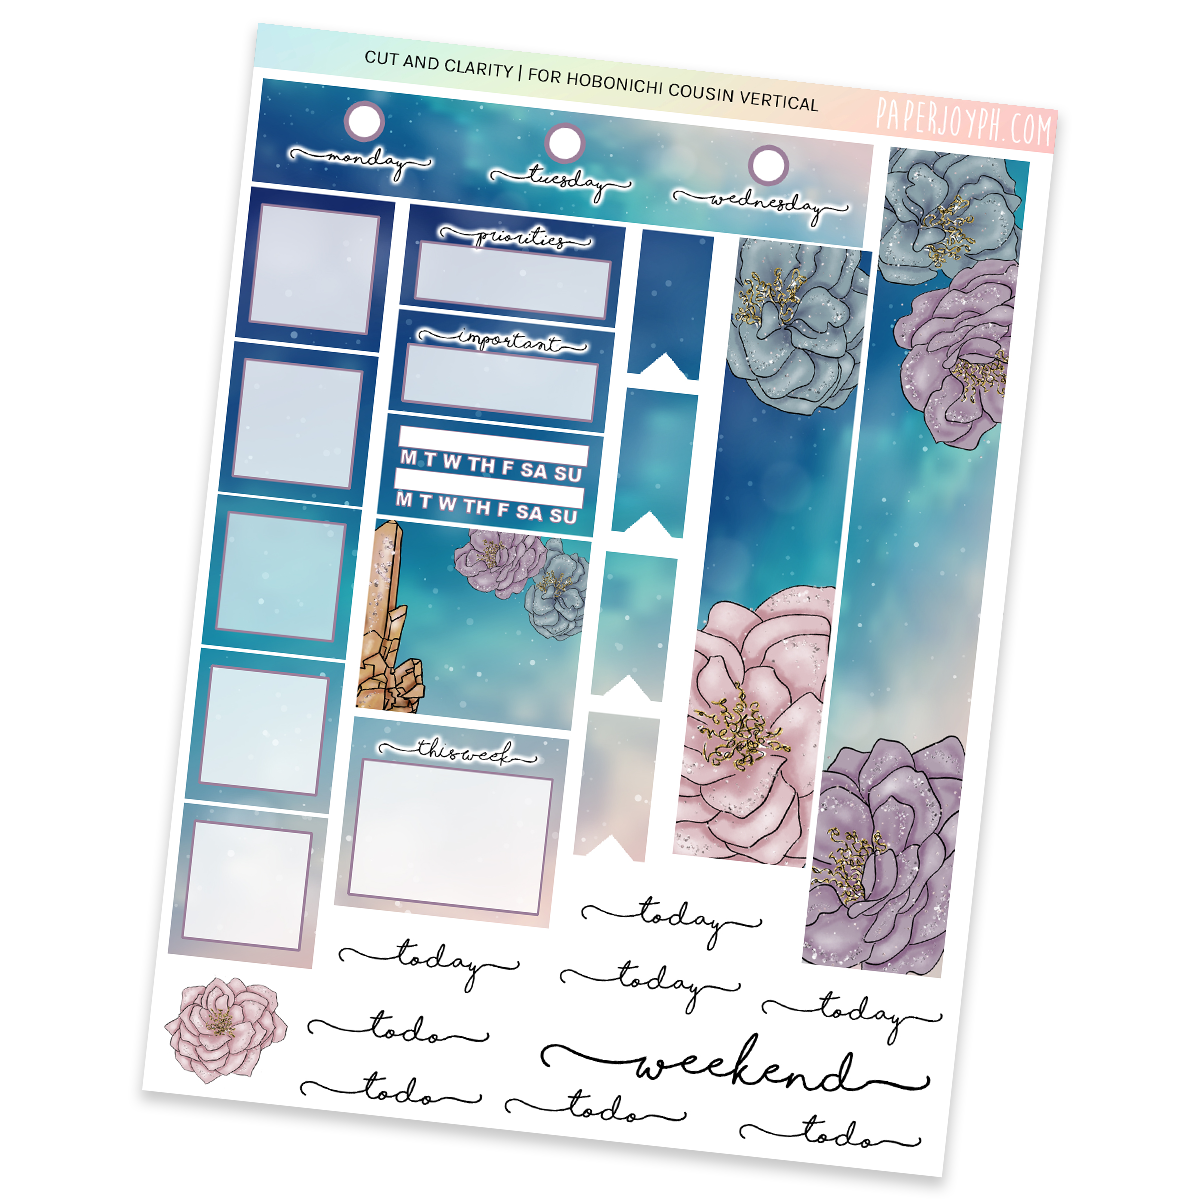 HOBONICHI COUSIN | VERTICAL STICKER KIT | CUT AND CLARITY